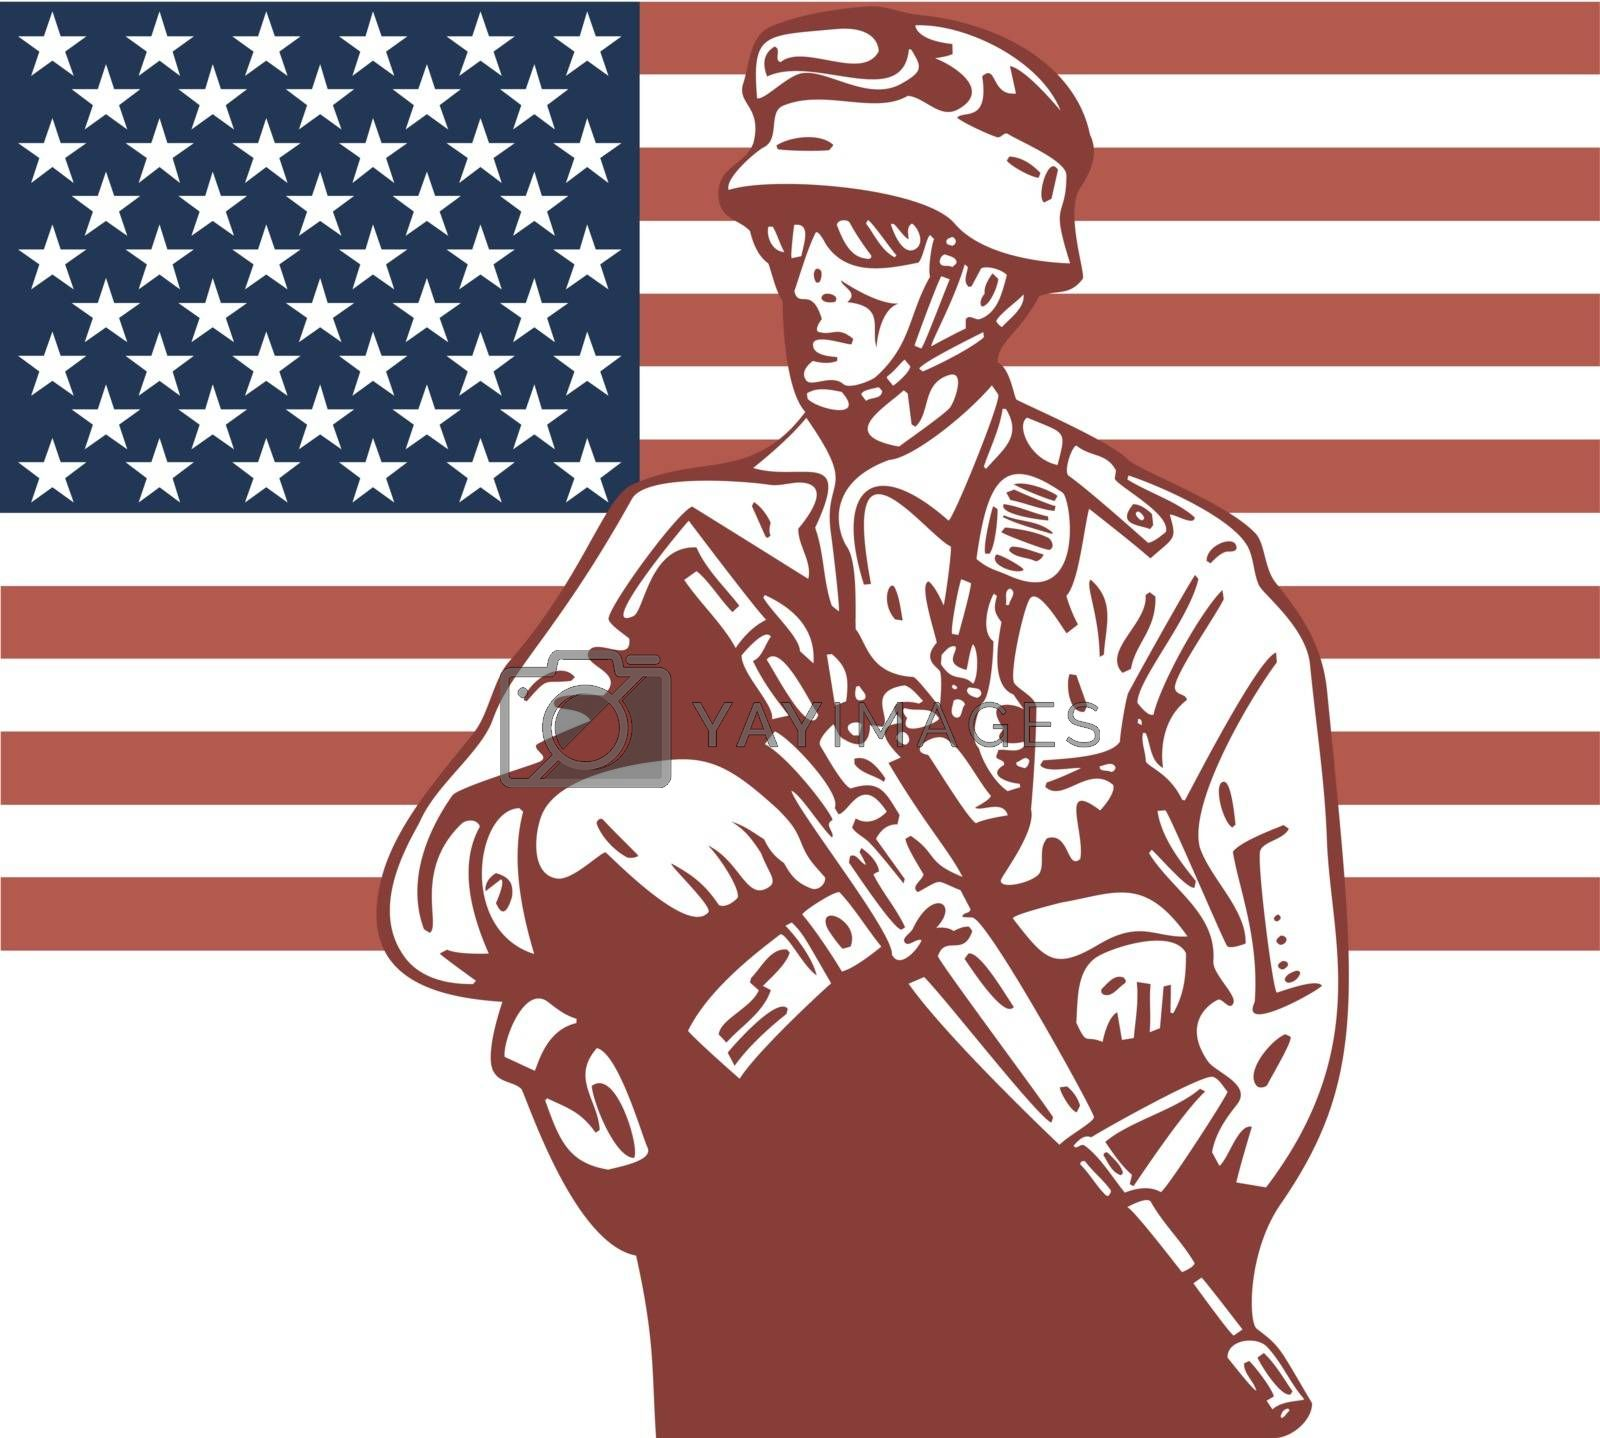 illustration of an American soldier serviceman carrying armalite rifle with stars and stripes flag in background